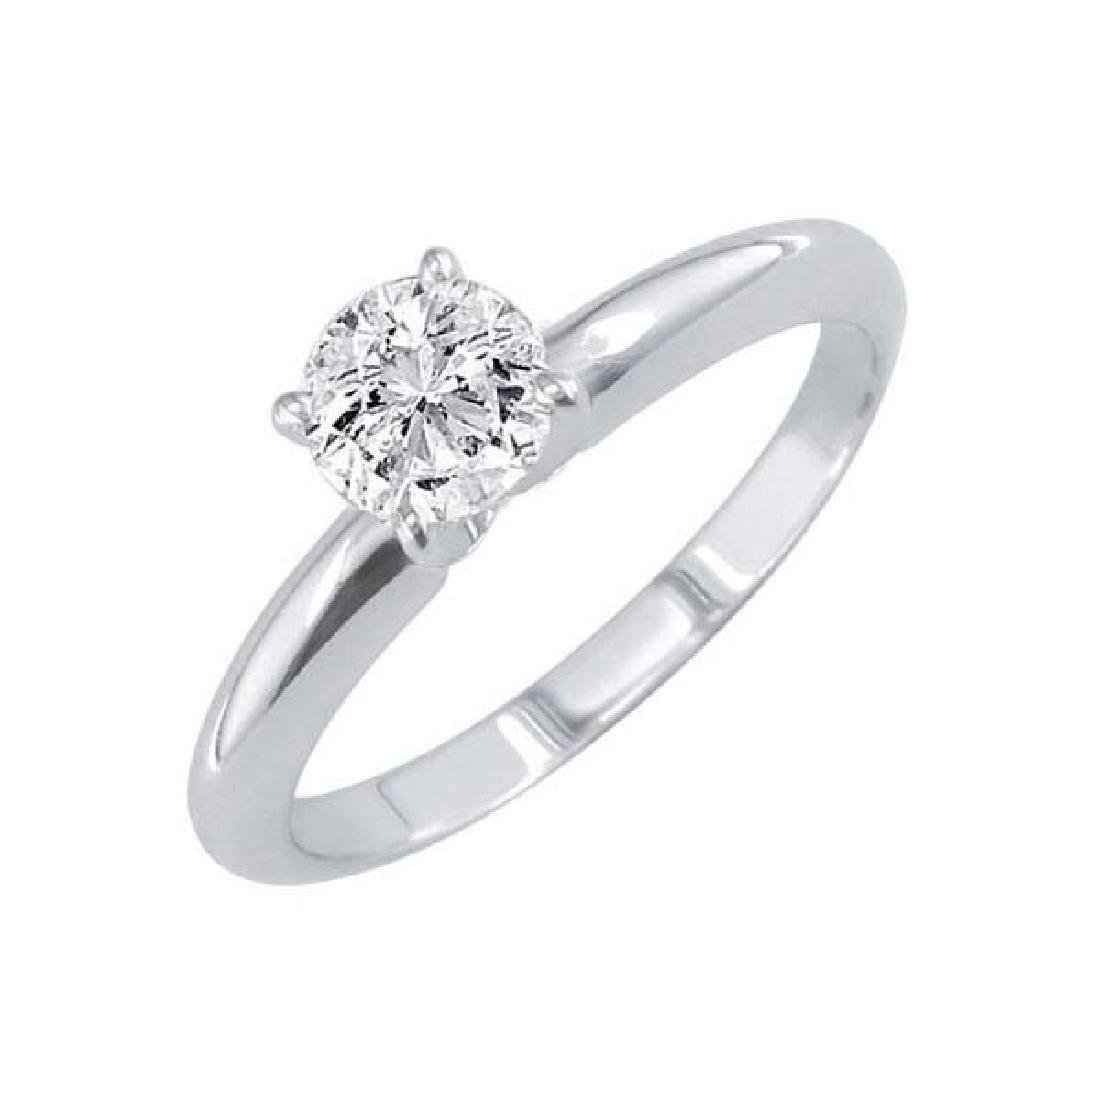 Certified 1.32 CTW Round Diamond Solitaire 14k Ring F/S